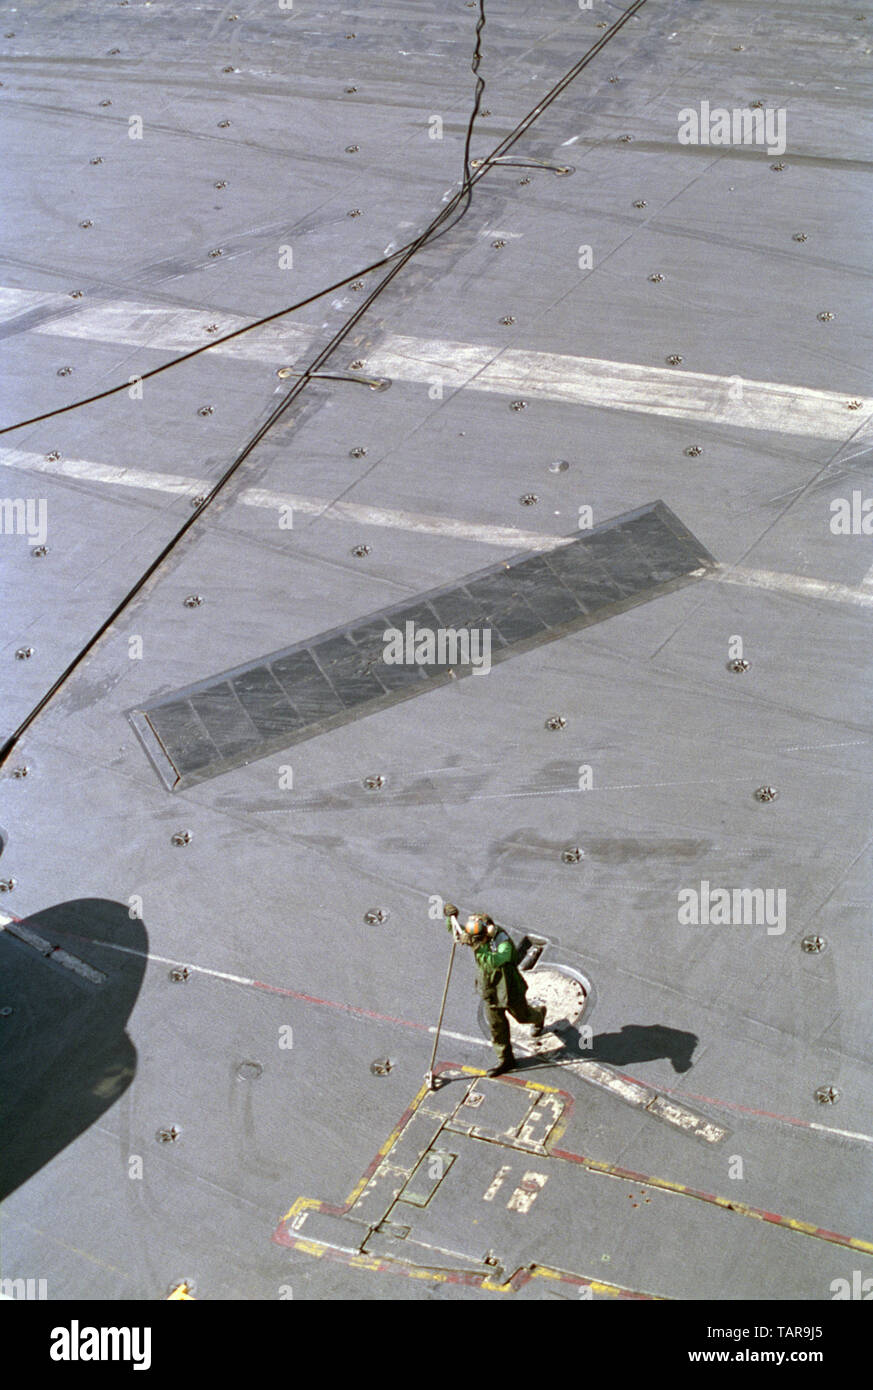 1st November 1993 Operation Continue Hope. A Green shirt with an arresting-gear tool on the flight deck of the U.S. Navy aircraft carrier USS Abraham Lincoln in the Indian Ocean, 50 miles off Mogadishu. - Stock Image